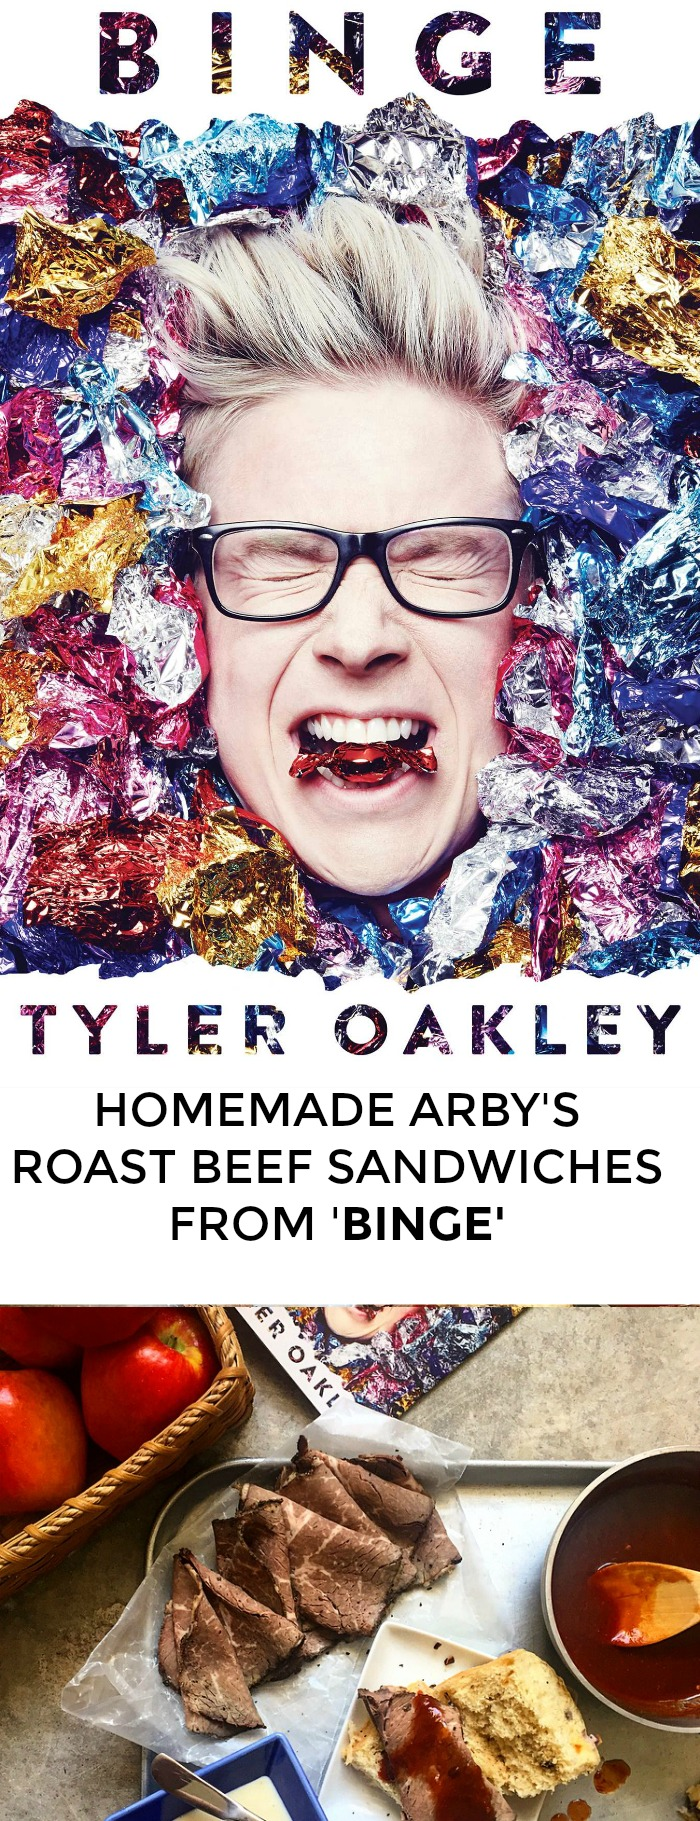 Looking for a recipe from Binge? Not sure who Tyler Oakley is but really trying to impress your book club? Me, too! Click through for an awesome recipe for homemade Arby's roast beef sandwiches inspired by 'Binge'!